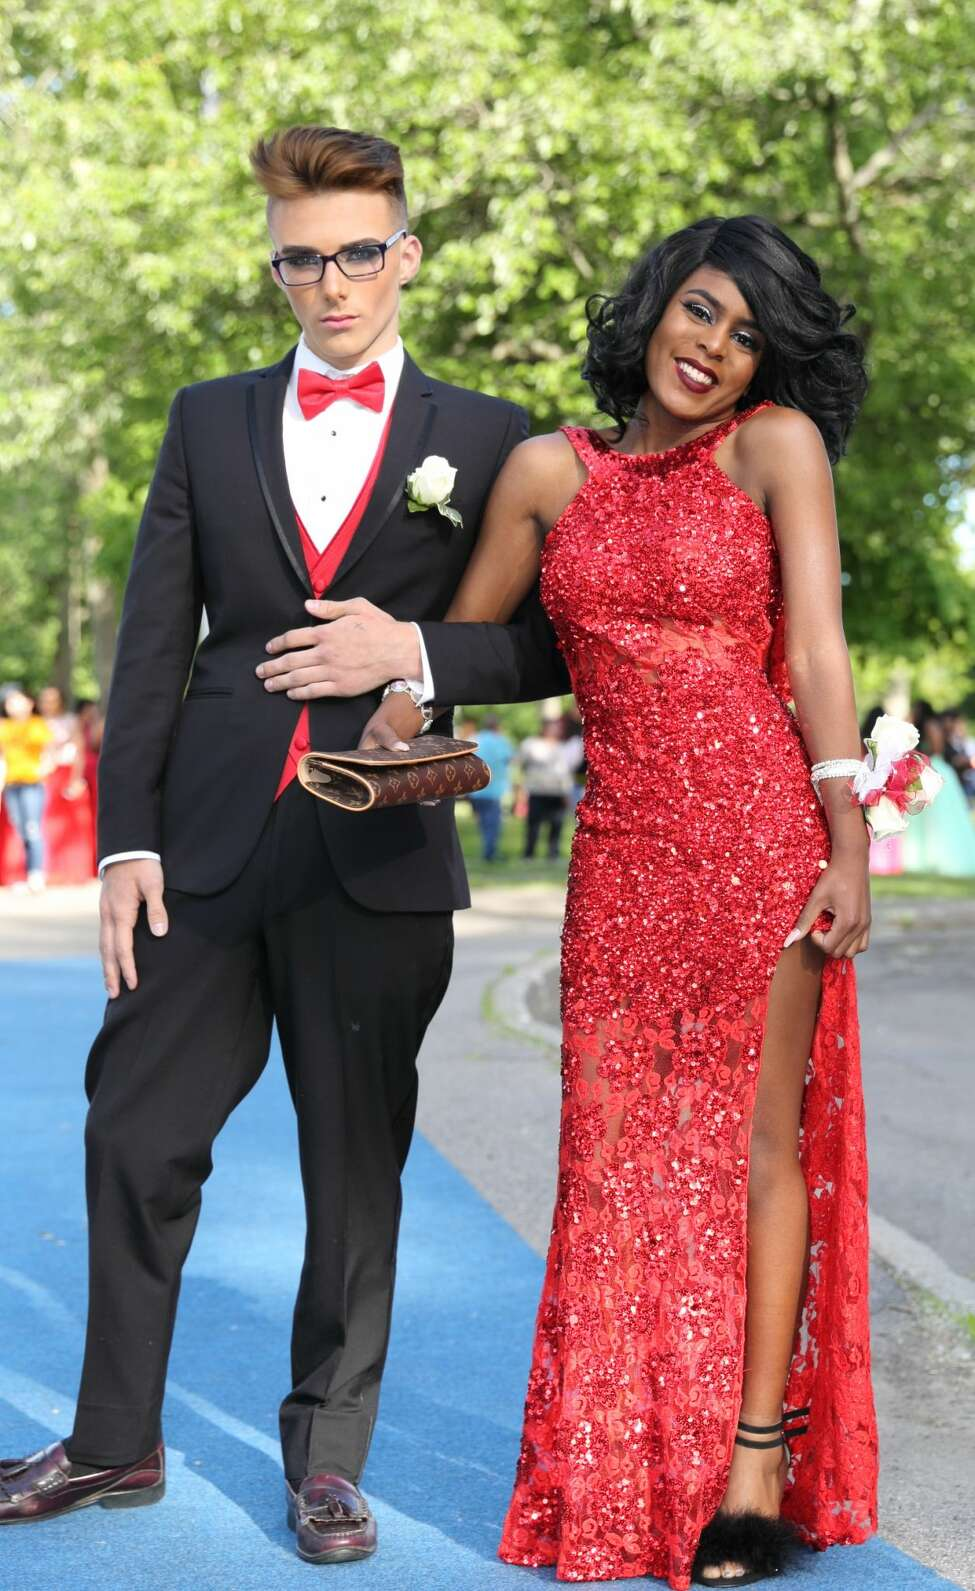 Were you Seen at the Schenectady High School Junior/Senior prom walk-in at the high school on Friday, June 10, 2016?